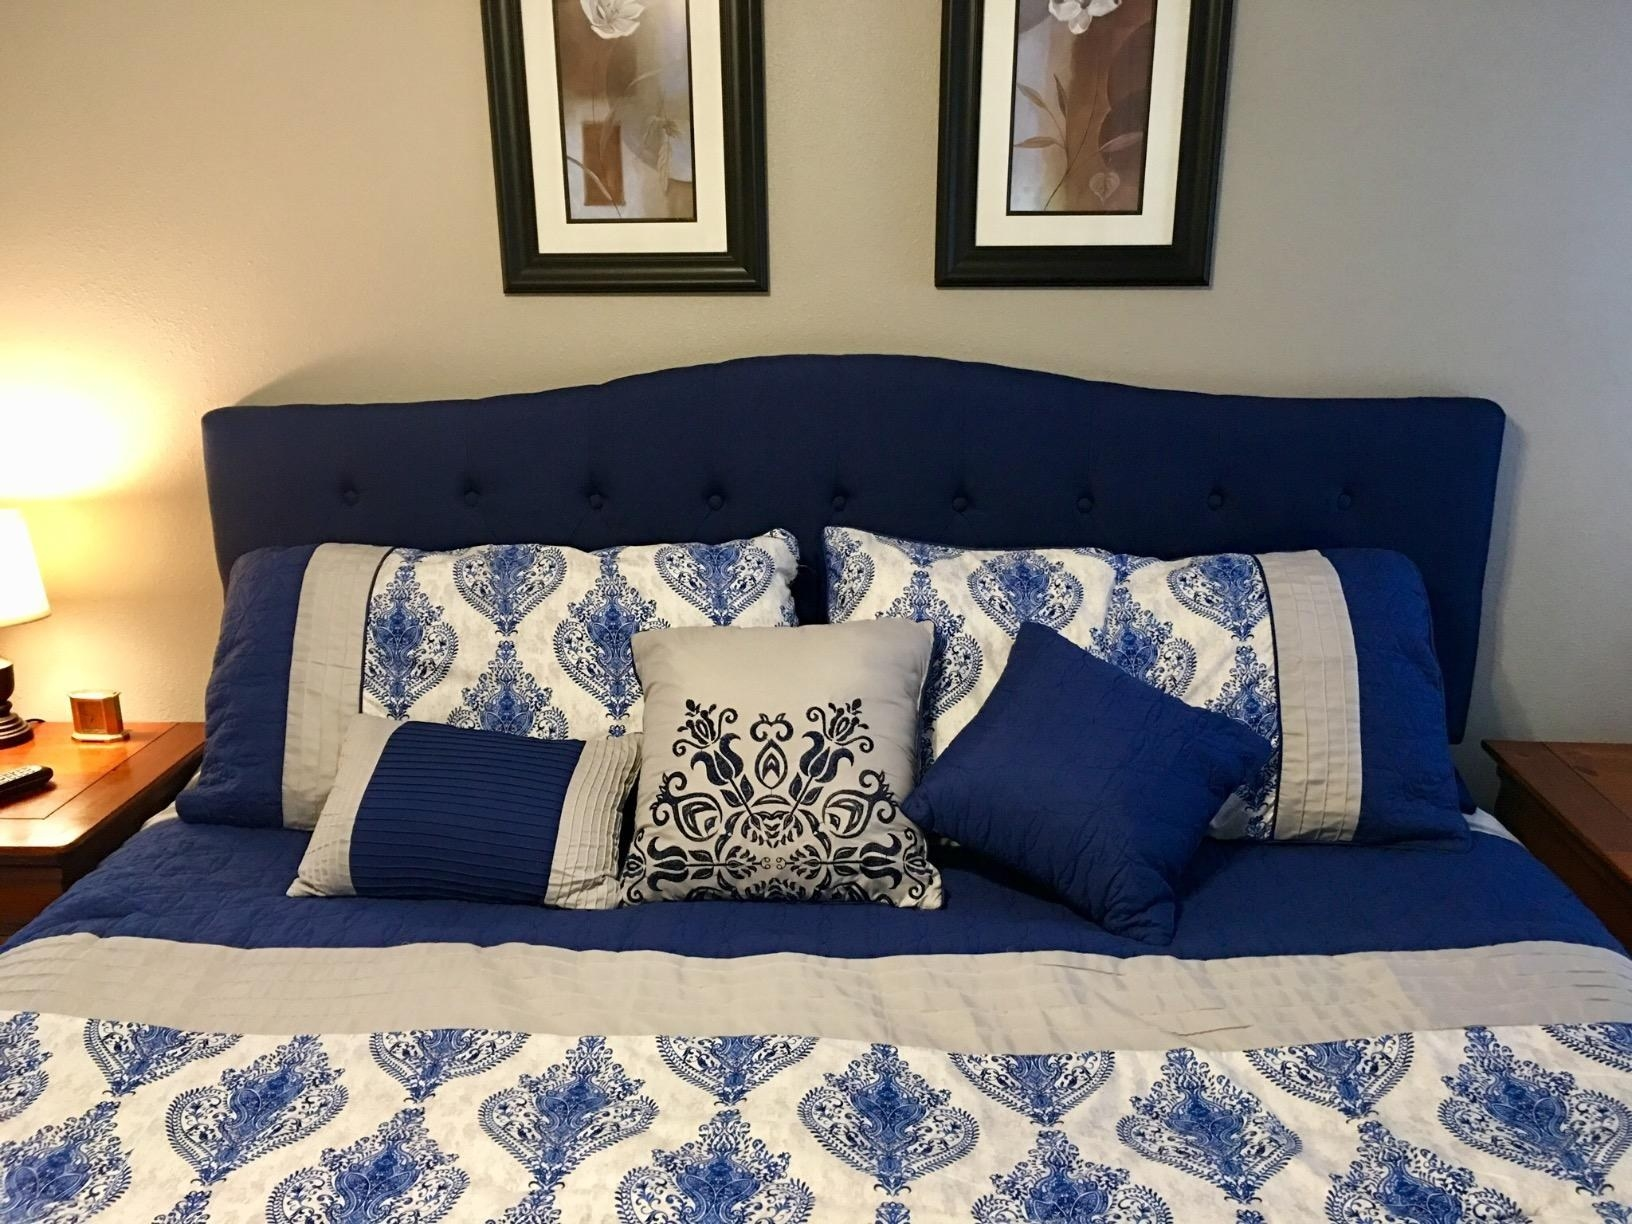 The blue tufted headboard with a slightly curved shape on a queen bed